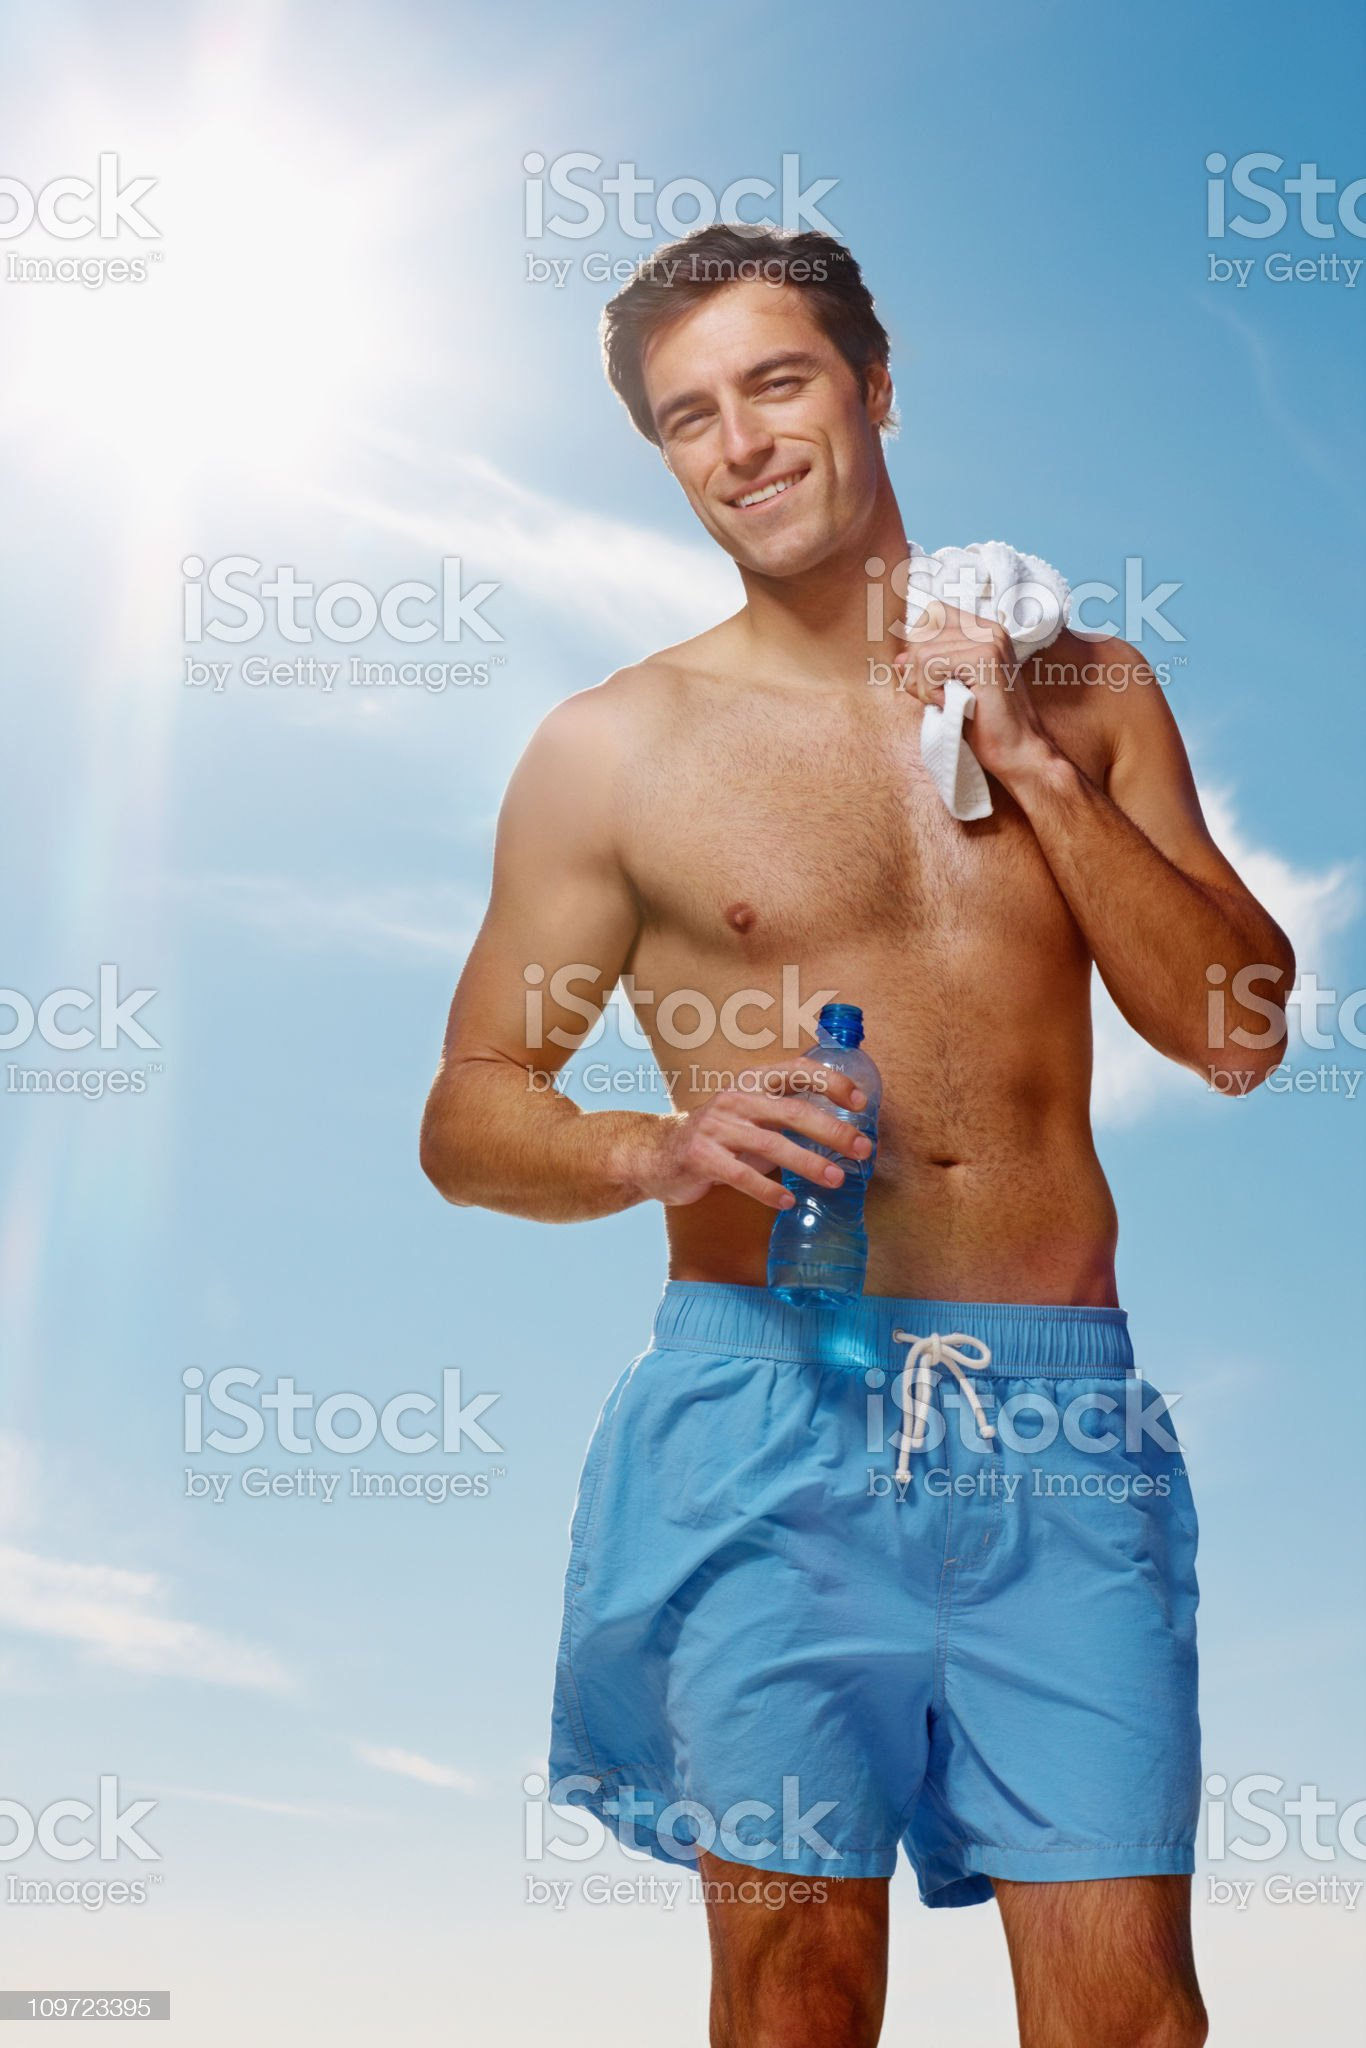 Happy guy against the blue sky after his workout royalty-free stock photo